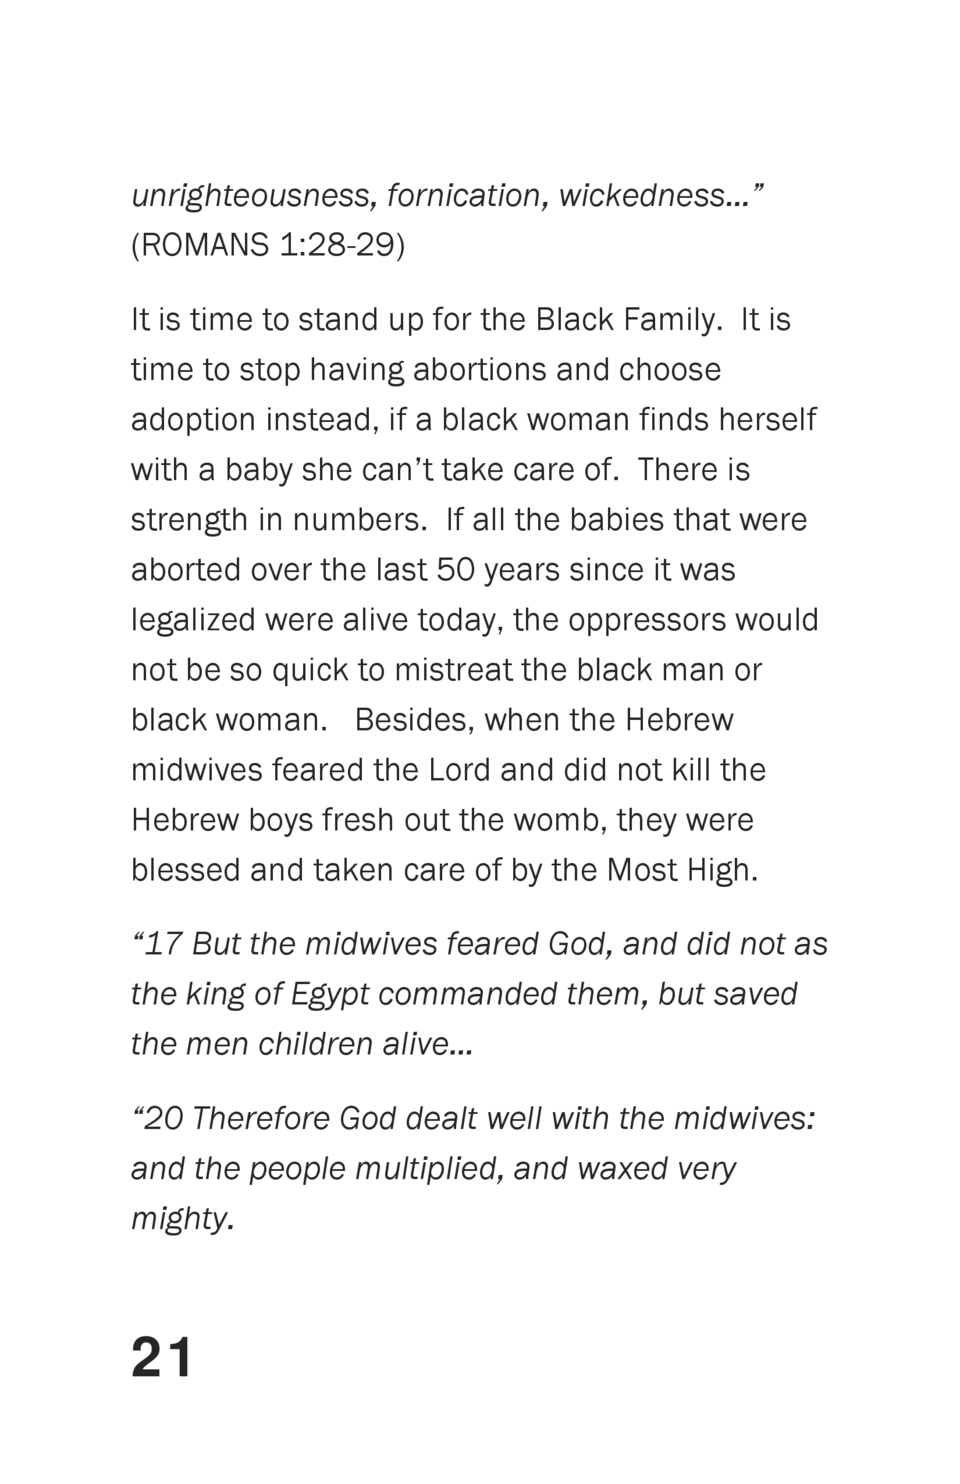 unrighteousness, fornication, wickedness        ROMANS 1 28-29  It is time to stand up for the Black Family. It is time to...